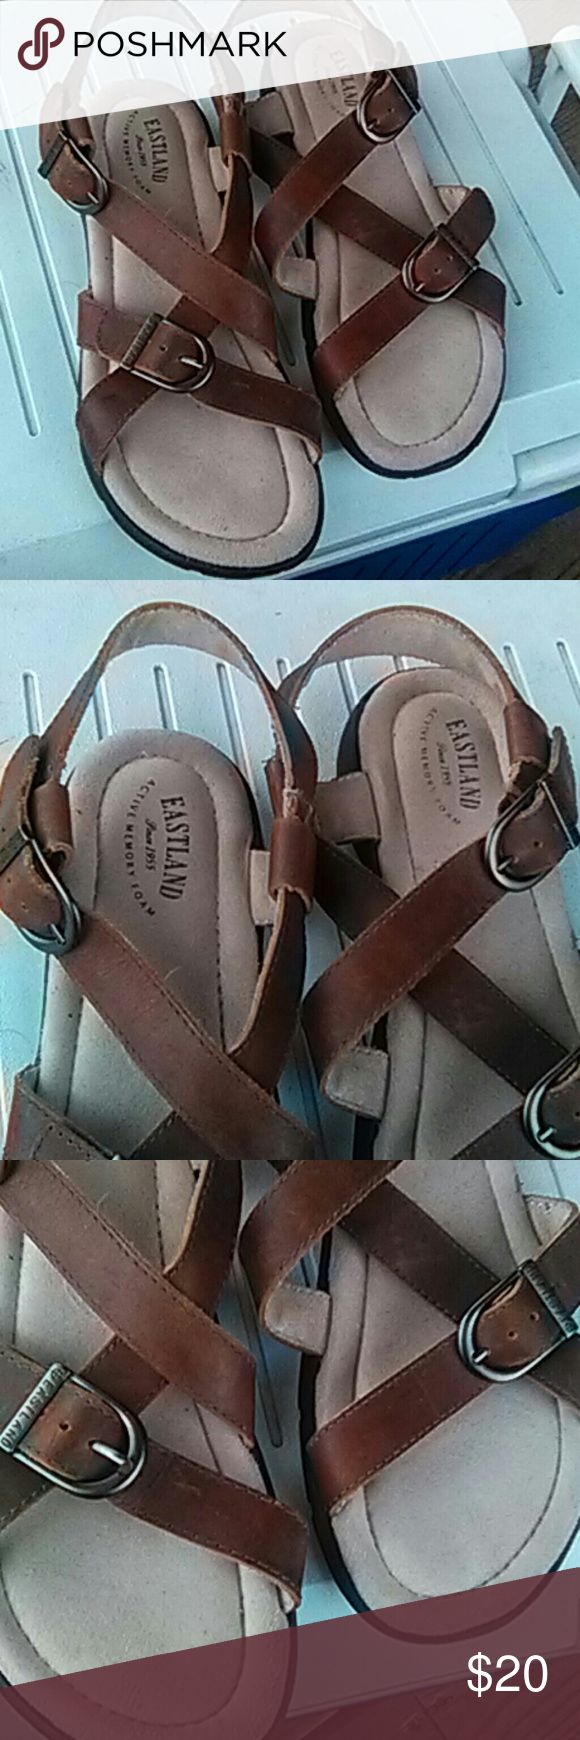 Eastland strappy  sandals Brown leather strap sandles.  Basically new.  Worn lightly a couple times. Eastland Shoes Sandals